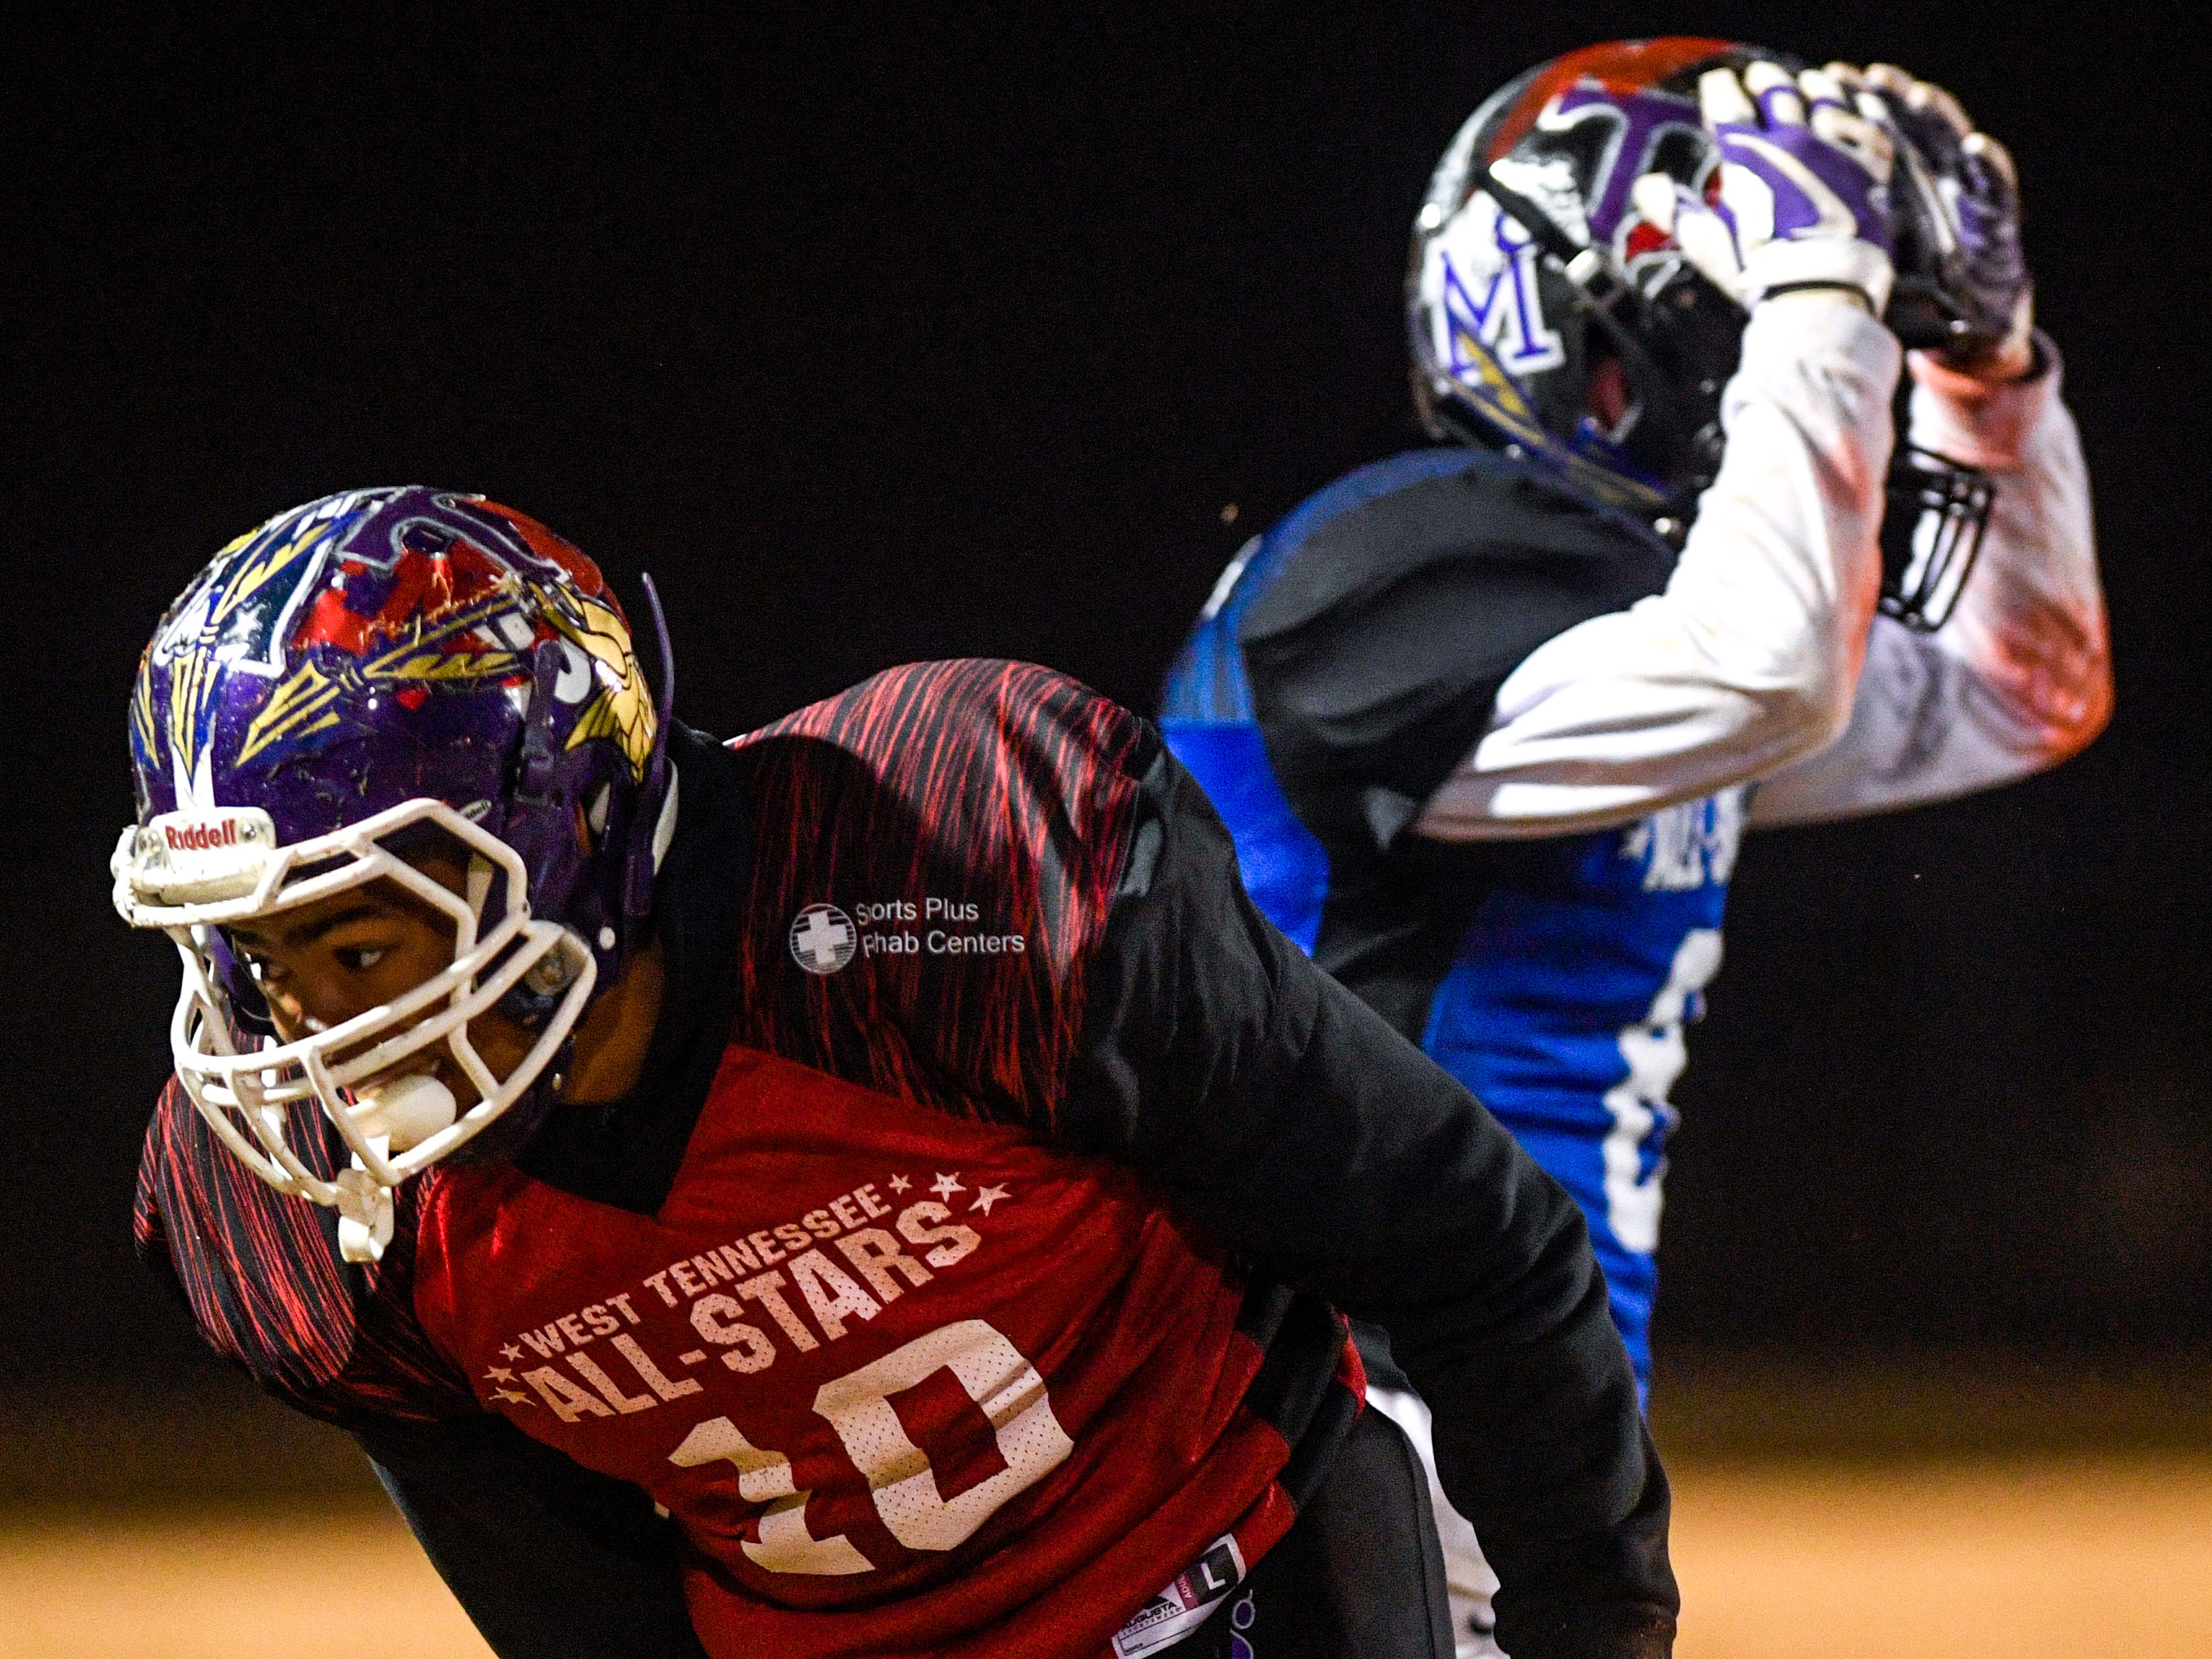 A South player throws his arms up in disappointment while Haywood Co's Taylor Shields (10) moves back to position during the West Tennessee All-Star football game at University School of Jackson in Jackson, Tenn., on Friday, Dec. 7, 2018.